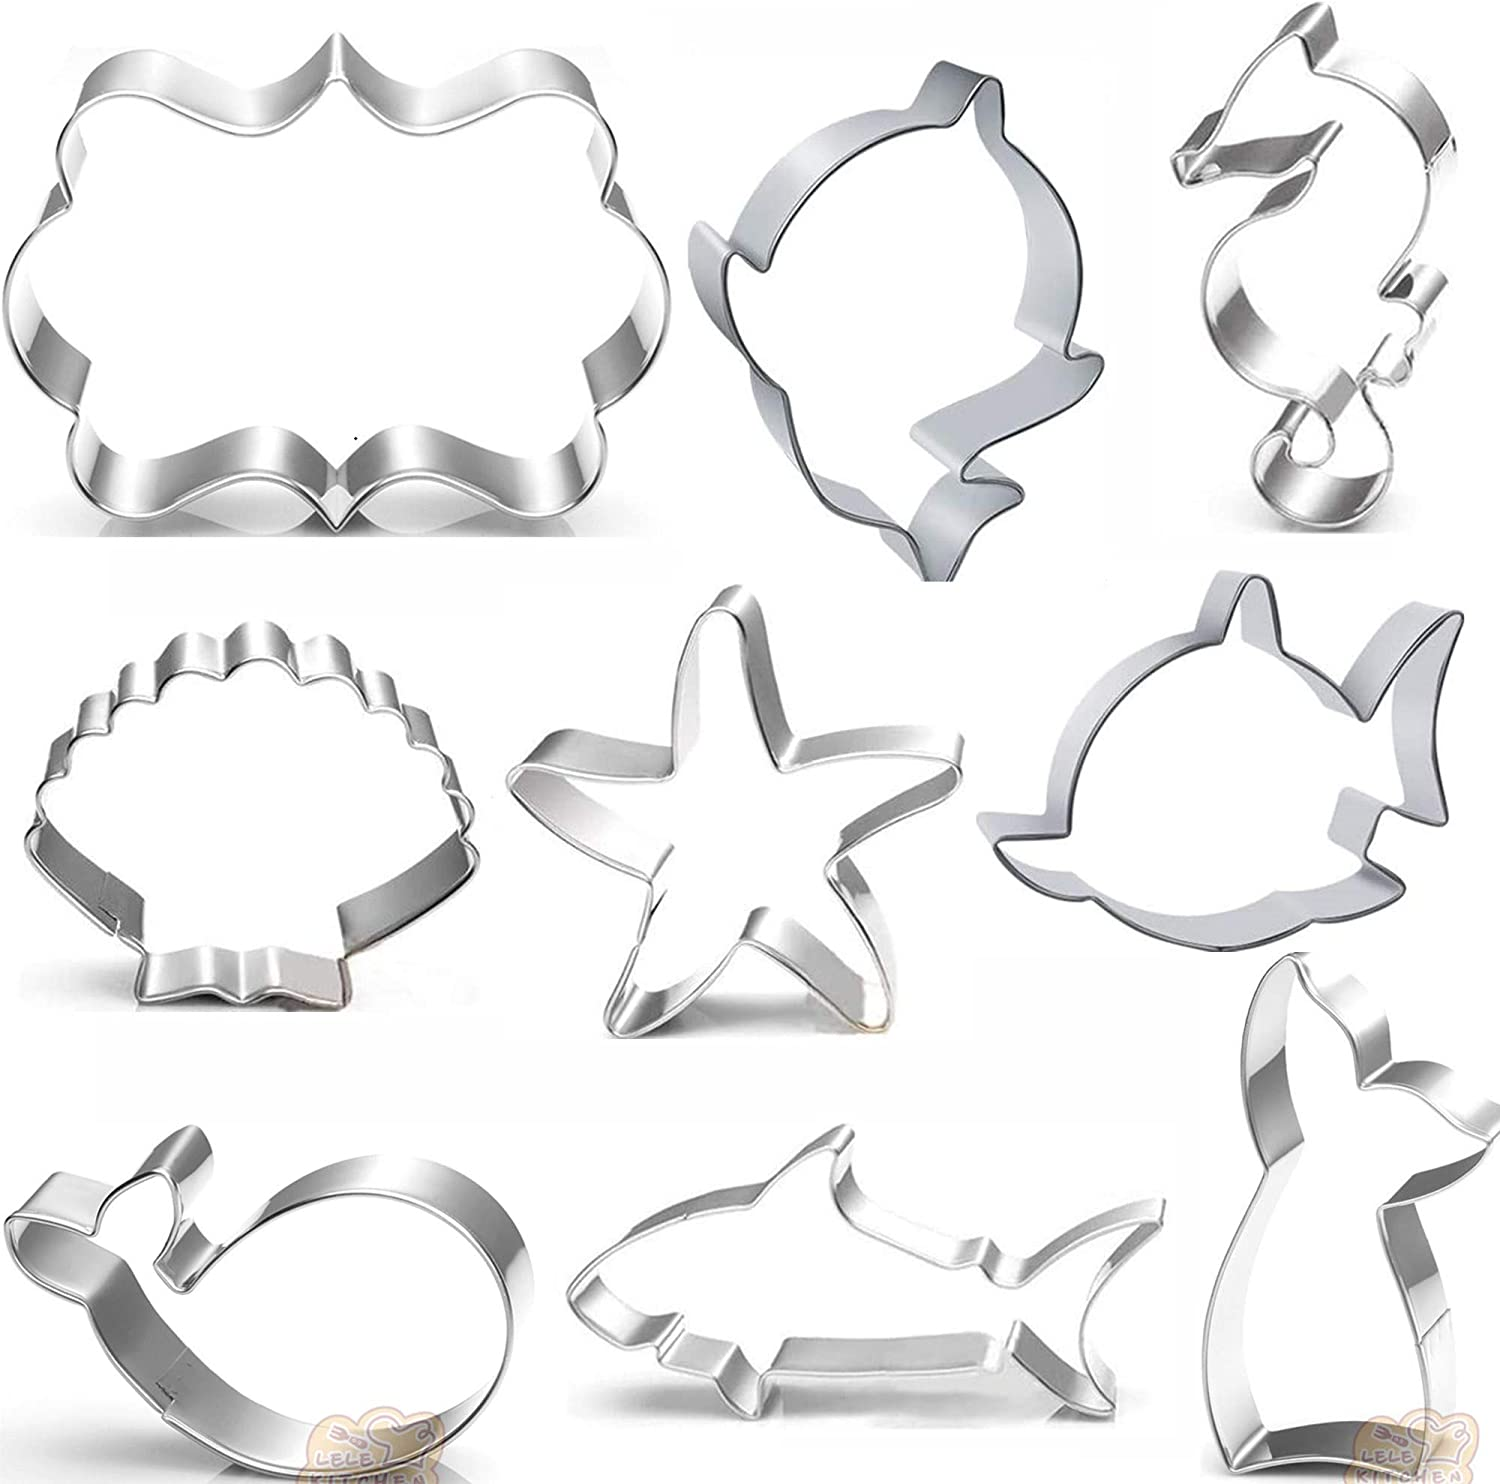 Baby shark cutte Cookie Cutters Set - 10 PCS - Mermaid Tail,baby shark,Seahorse,Starfish,Seashell,whale,Shark Cookie Cutters Molds